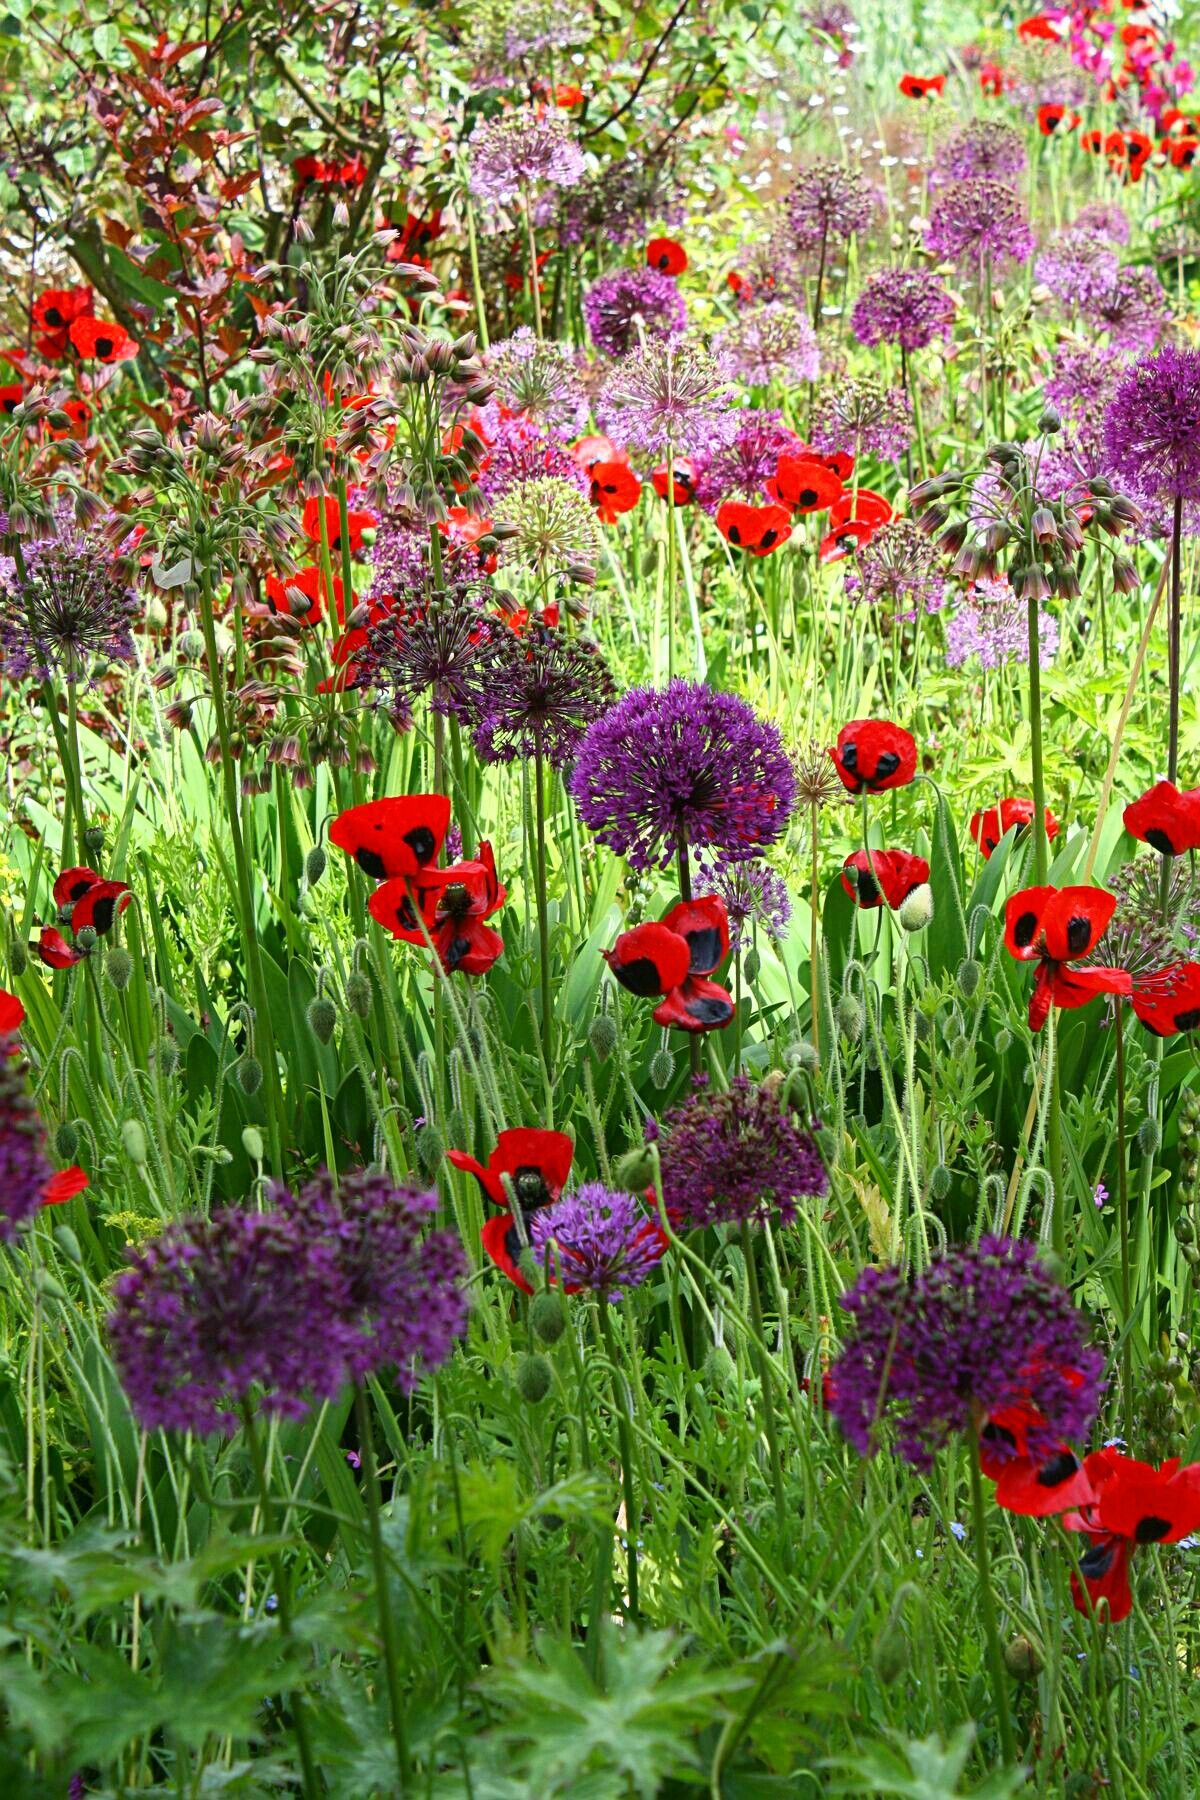 Alliums And Poppies Coltivare I Fiori Lettere Fatte Di Fiori